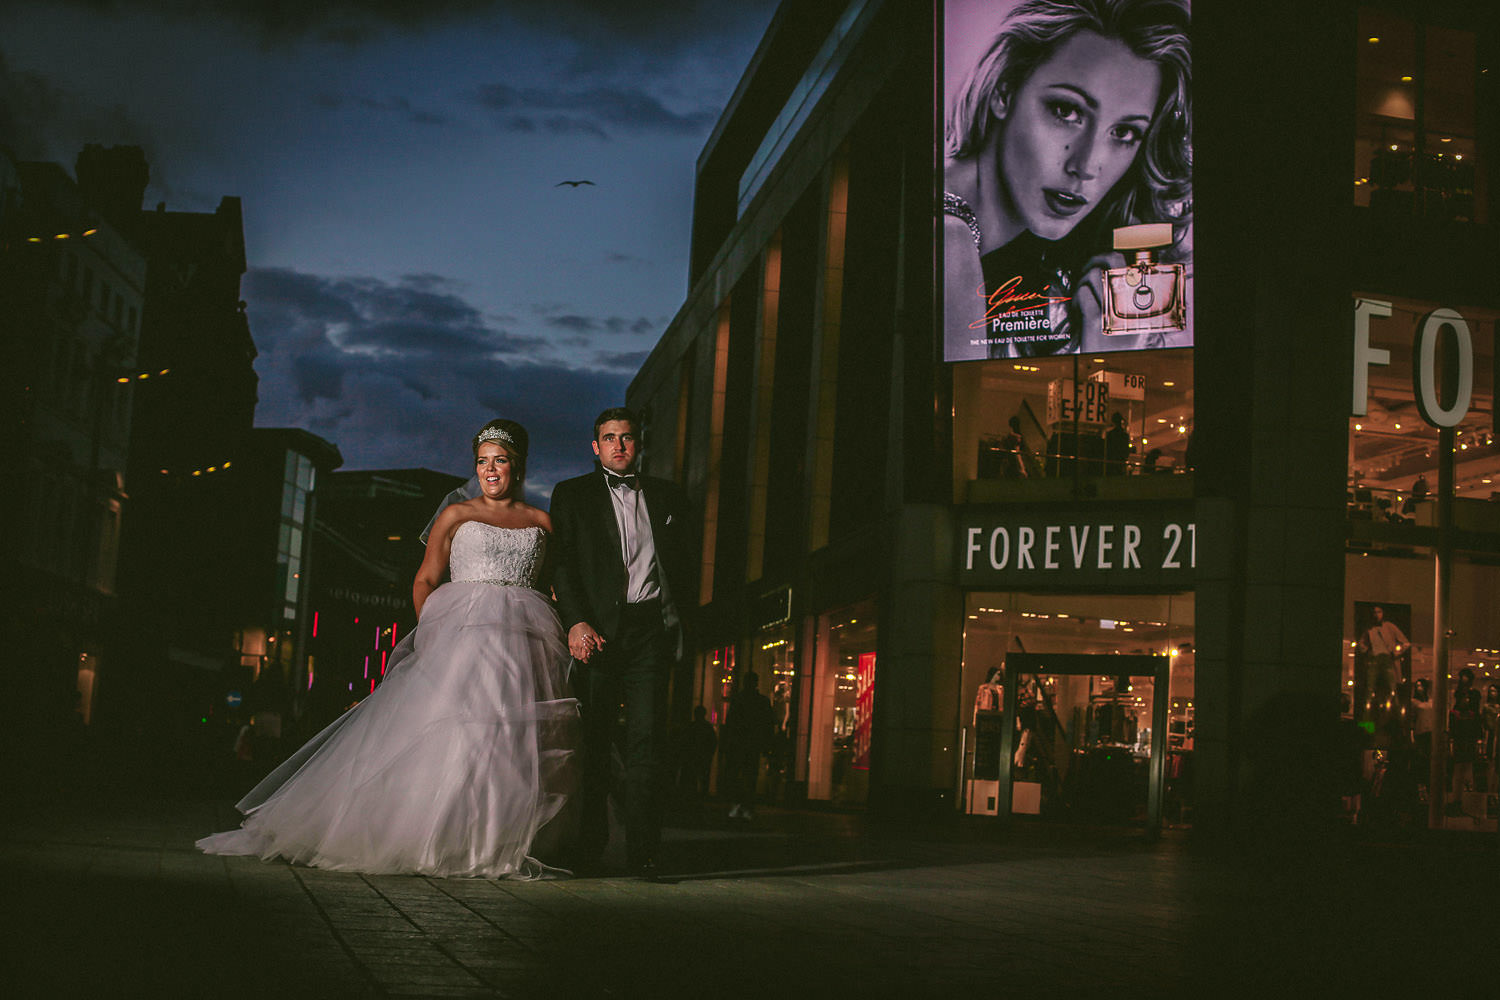 Liverpool wedding photographer. Bride and groom walking forever 21 in Liverpool